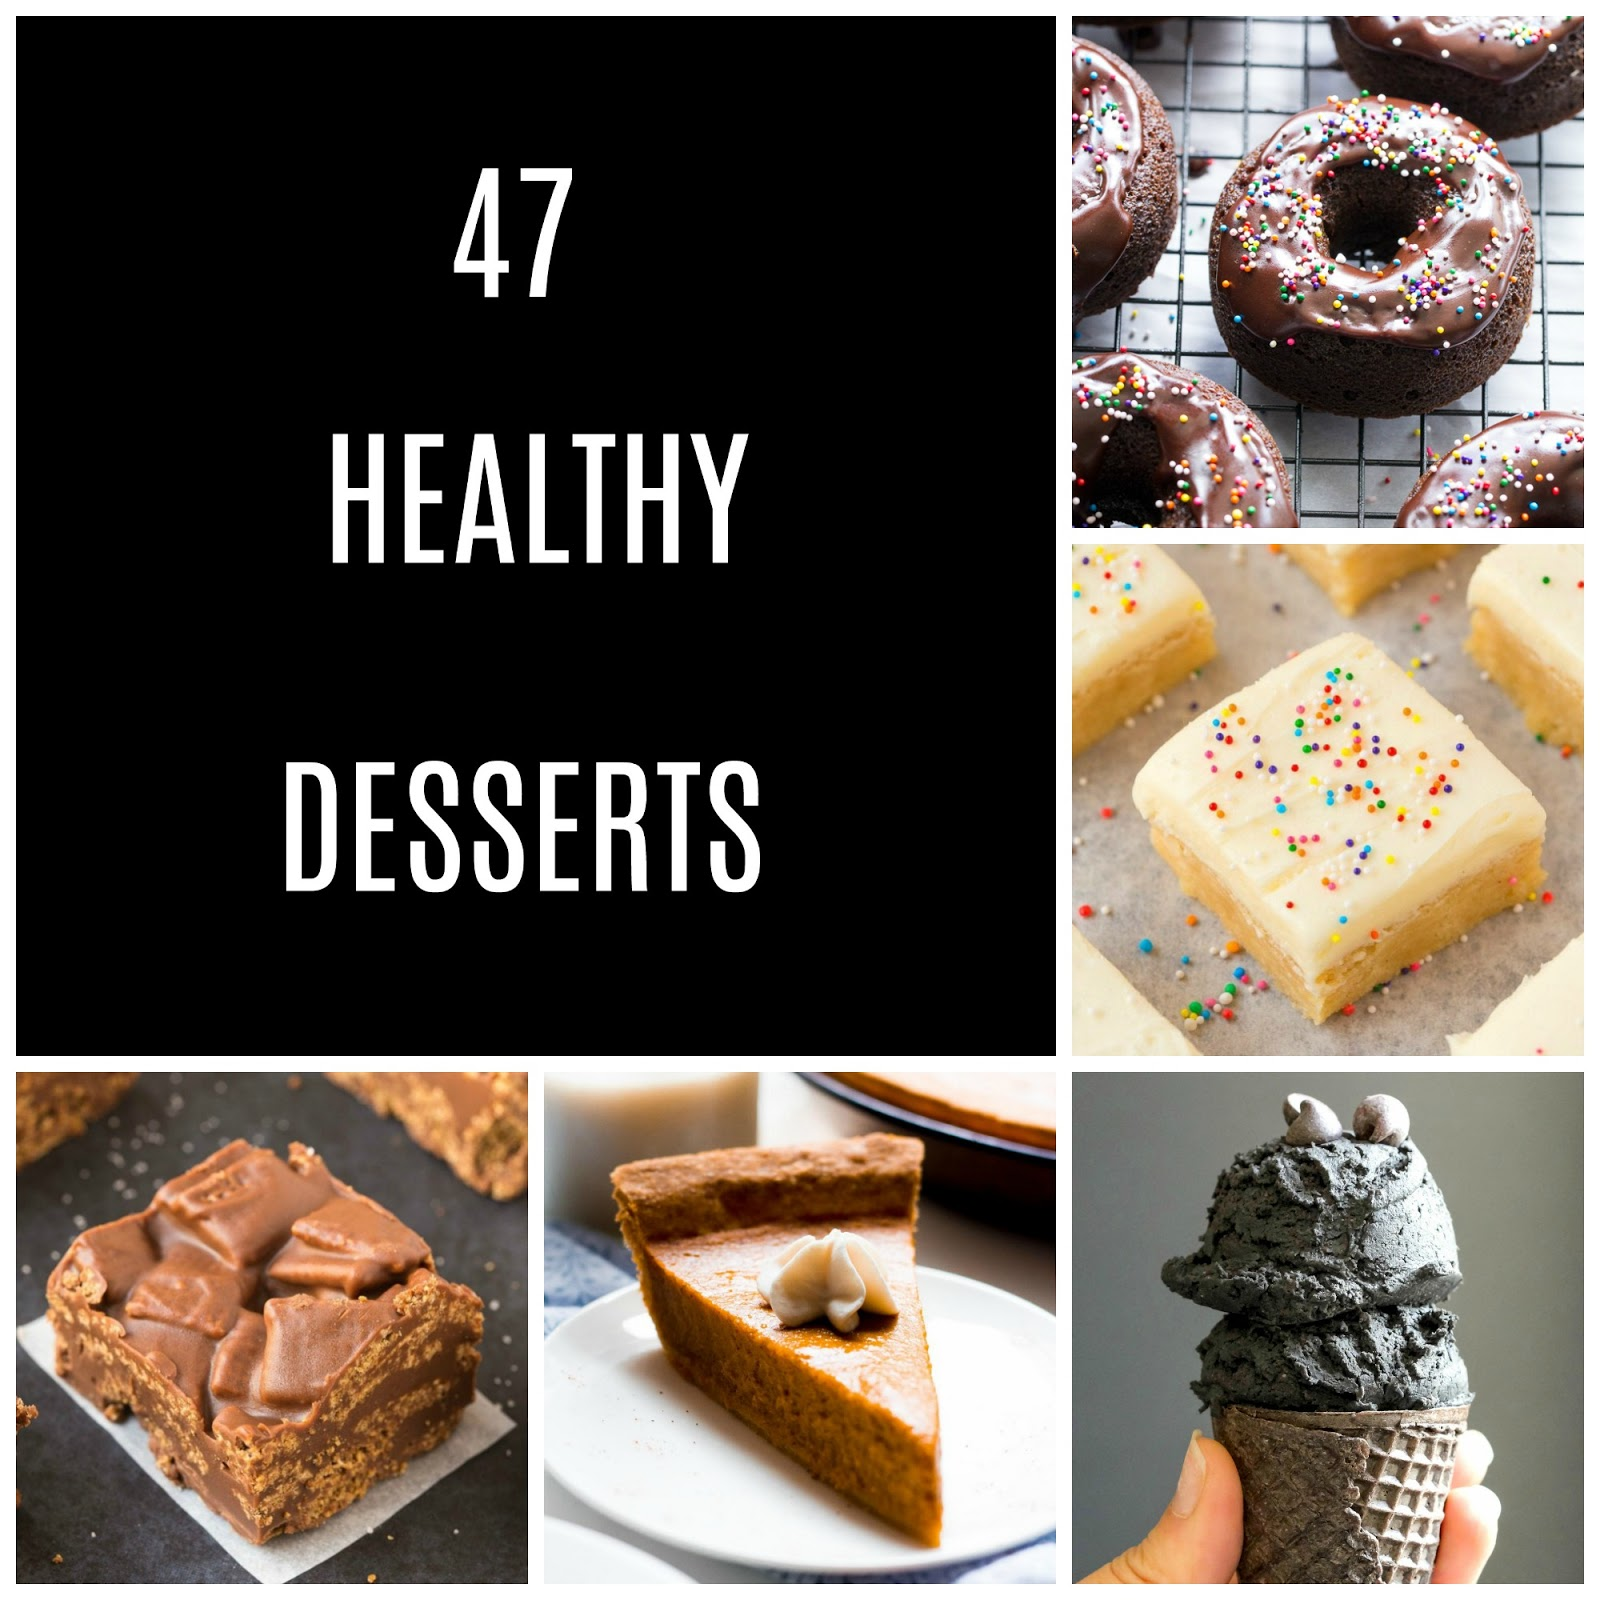 47 desserts that you will not believe to be healthy! Some healthier than others, but still healthy or healthier versions of classic desserts.